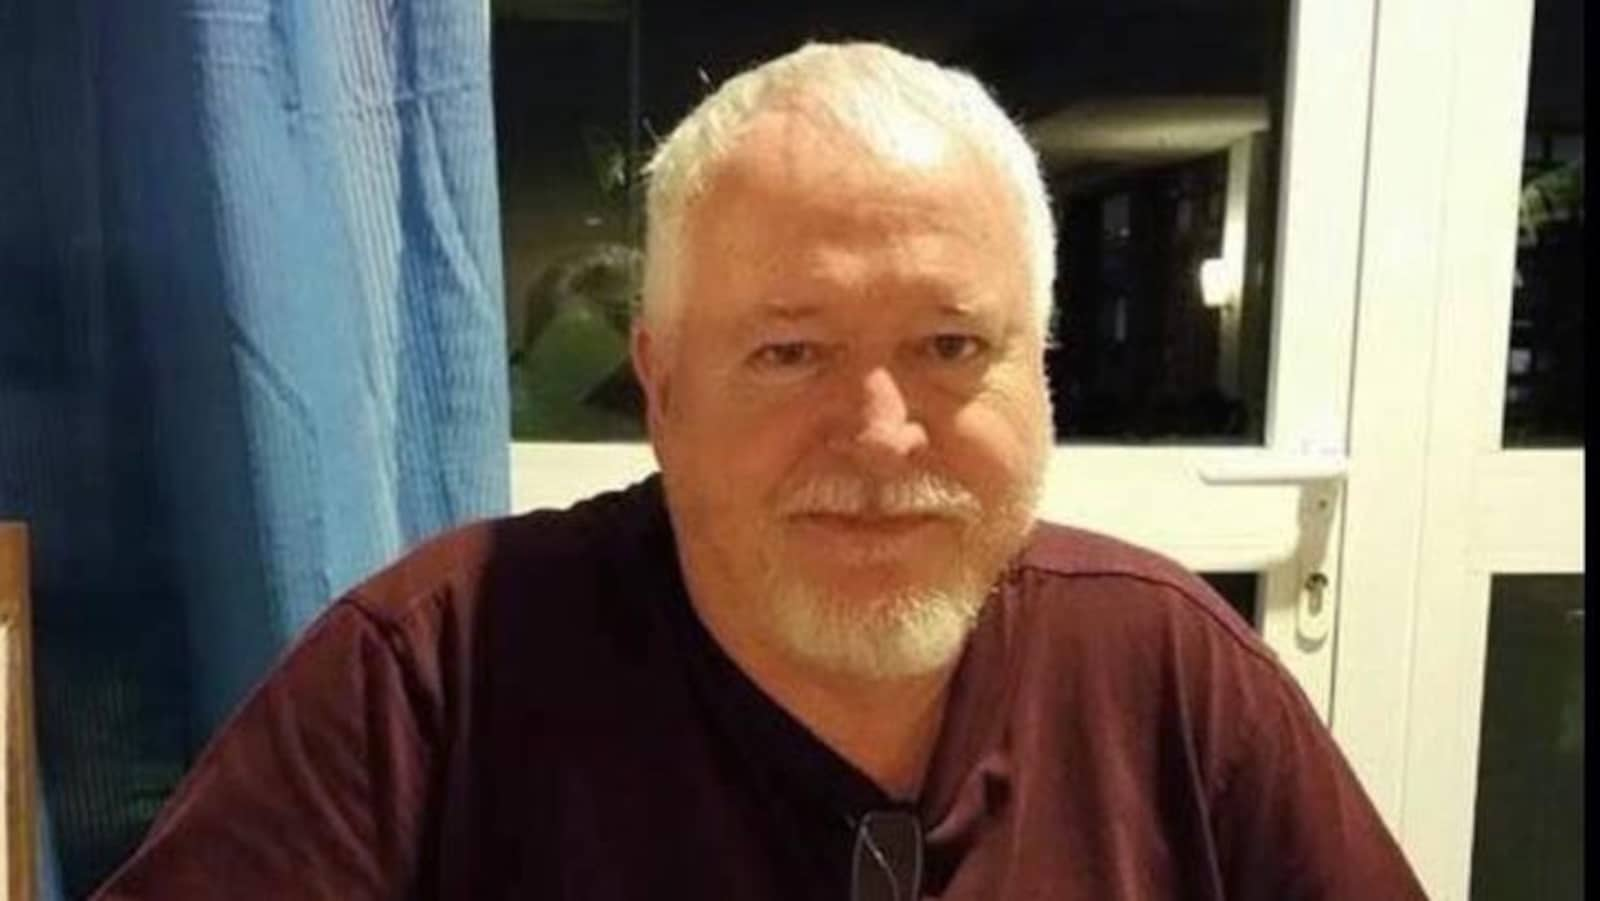 Photo de Bruce McArthur à table portant un t-shirt brun.